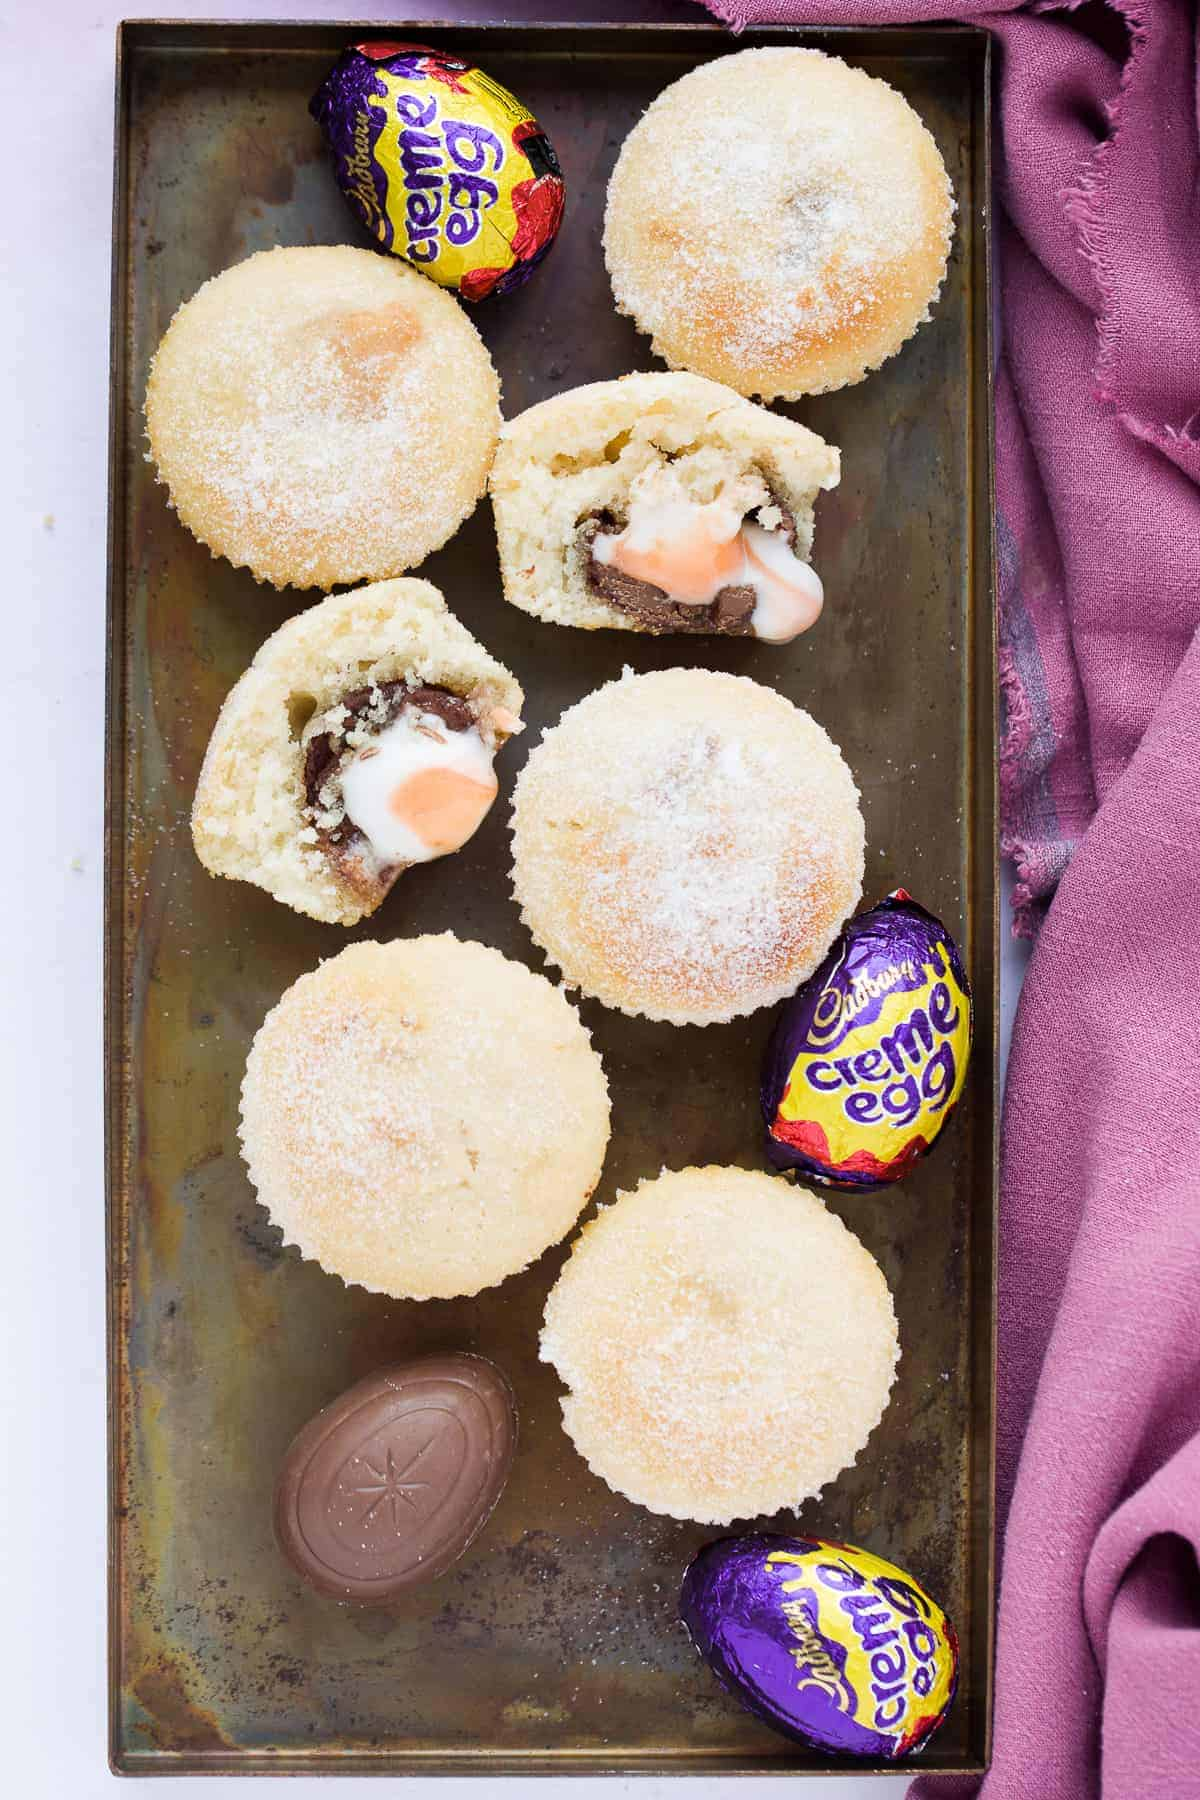 Doughnut muffins with creme eggs on a baking tray.